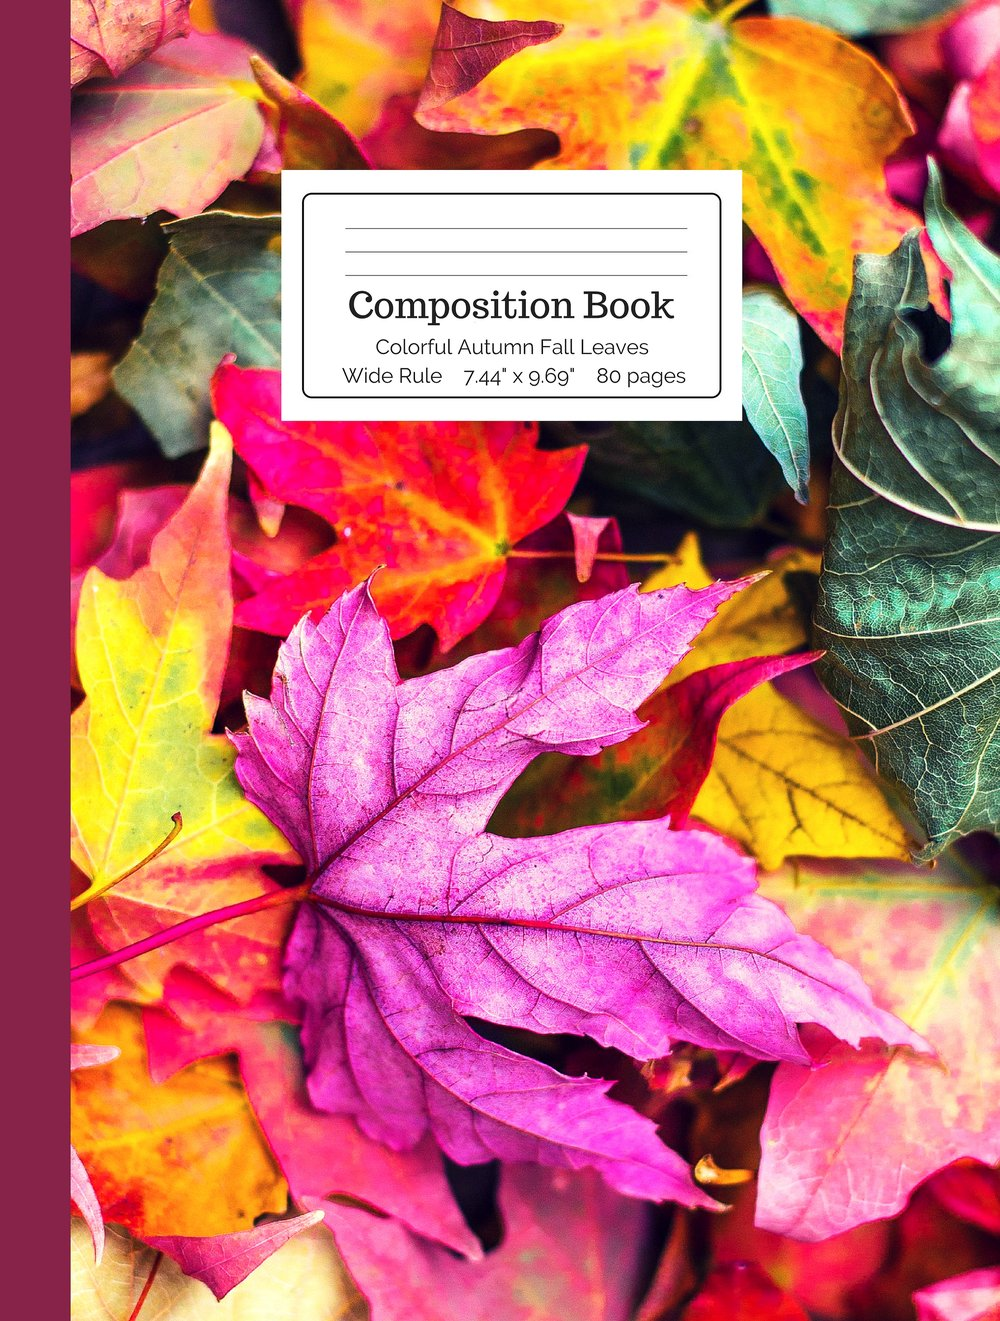 Colorful Autumn Fall Leaves Composition Book